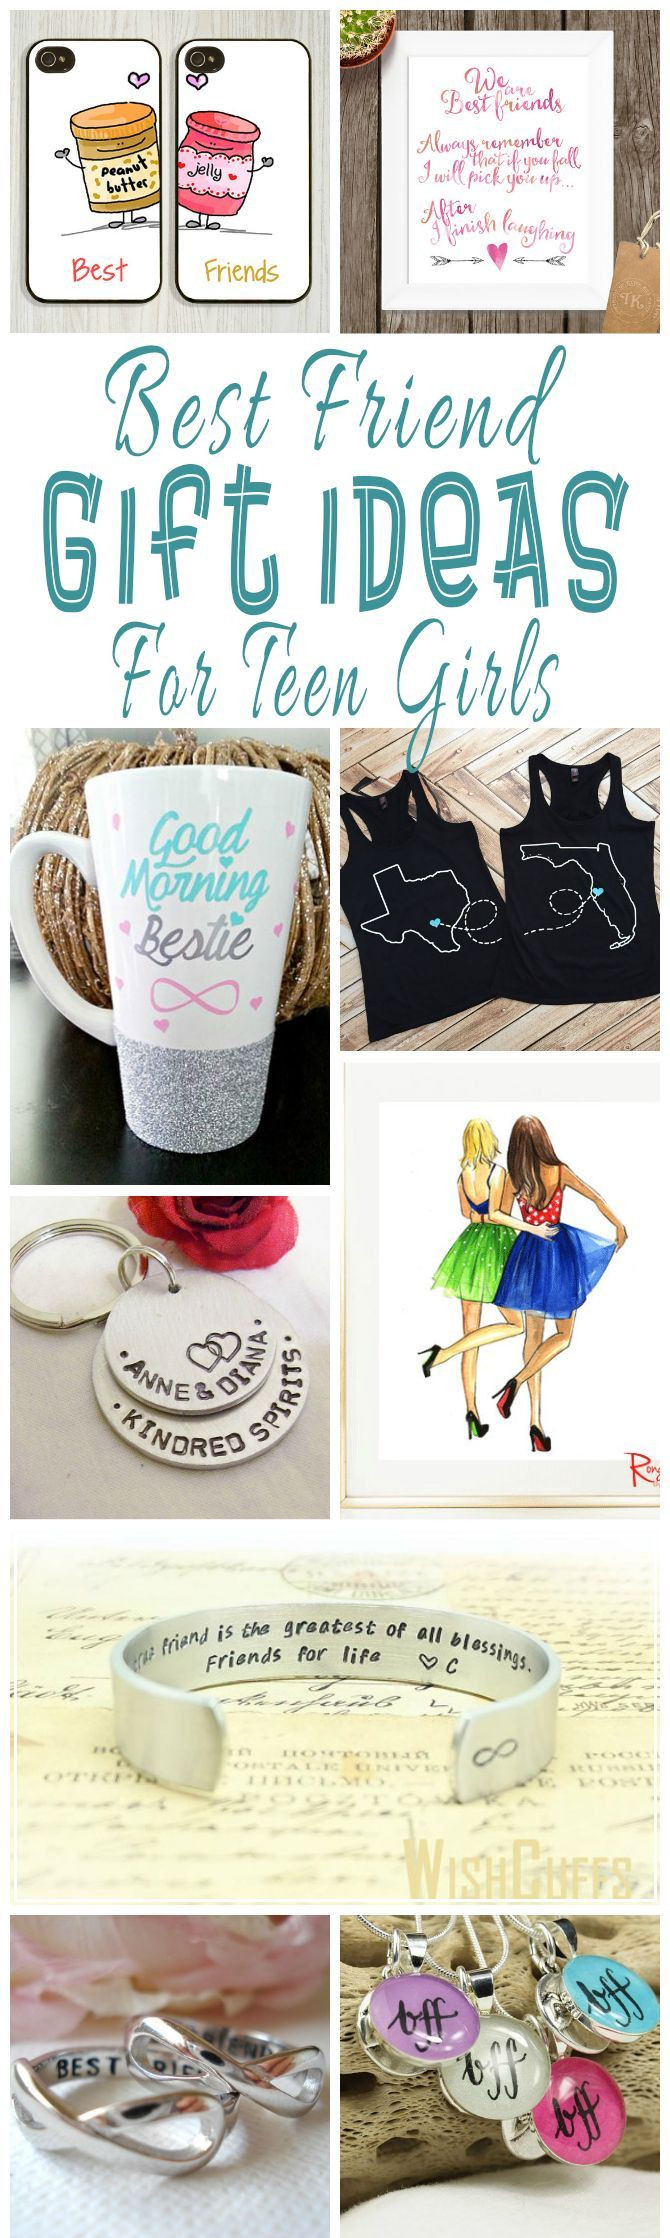 Birthday Gift Ideas For Friend Woman  Best Friend Gift Ideas For Teens